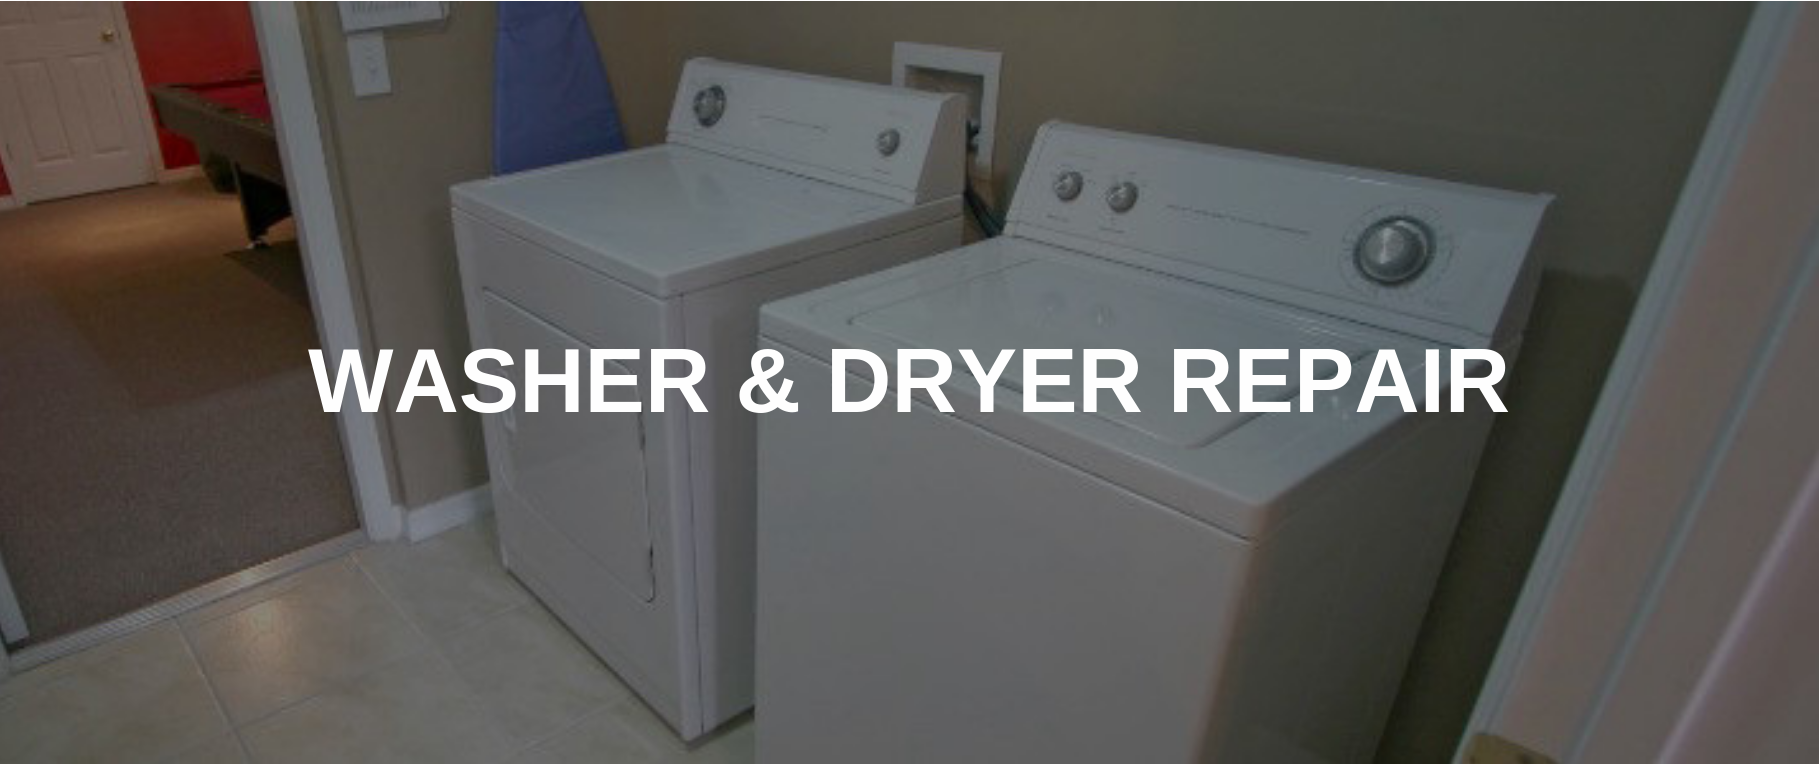 washing machine repair waterbury